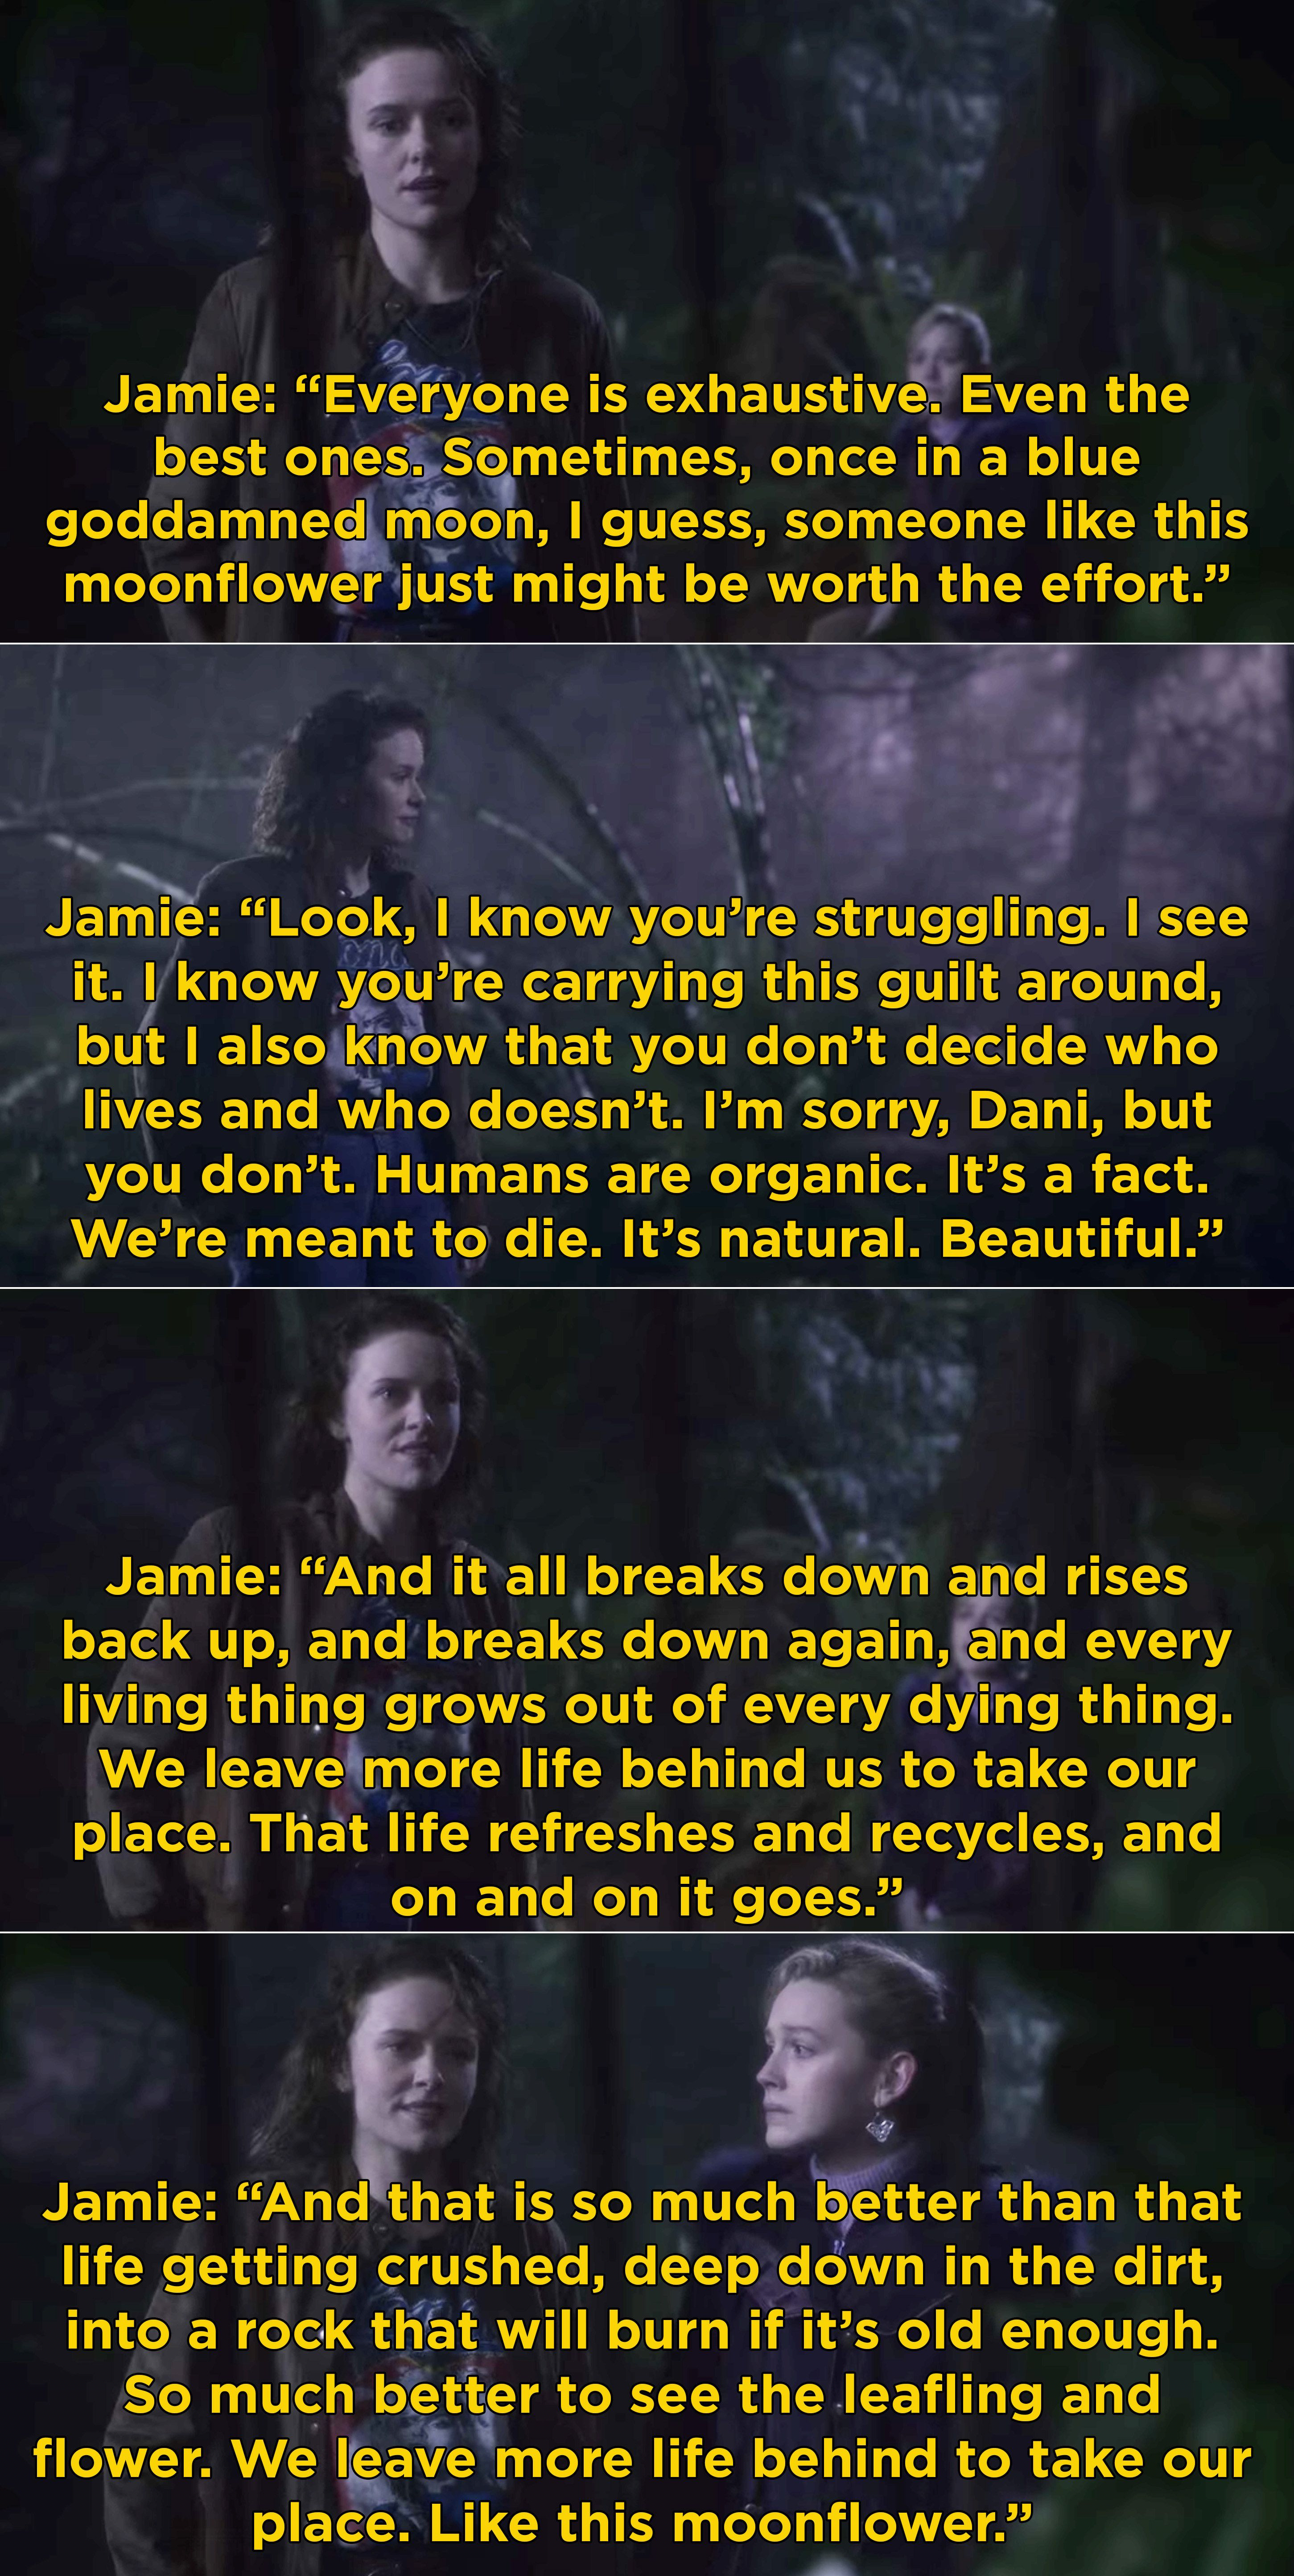 I mean, Jamie's monologue about the moonflower and comparing plants to people might be one of my favorite TV scenes of the year.